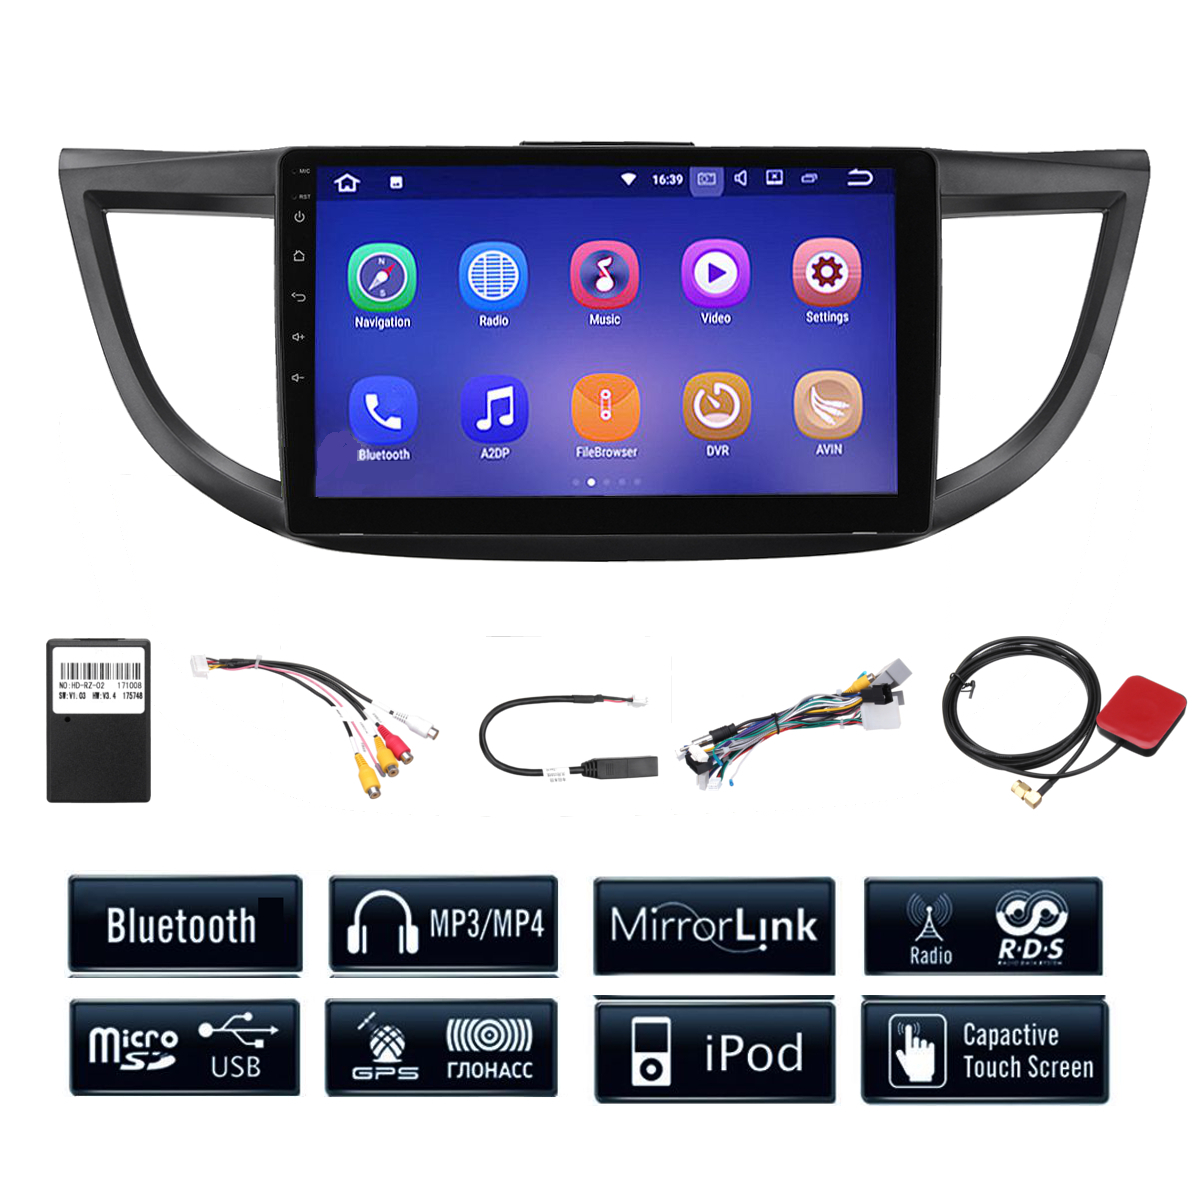 10.2 Inch Android 7.1 Radio Car Stereo GPS Navigation For Honda CRV 2012-2015